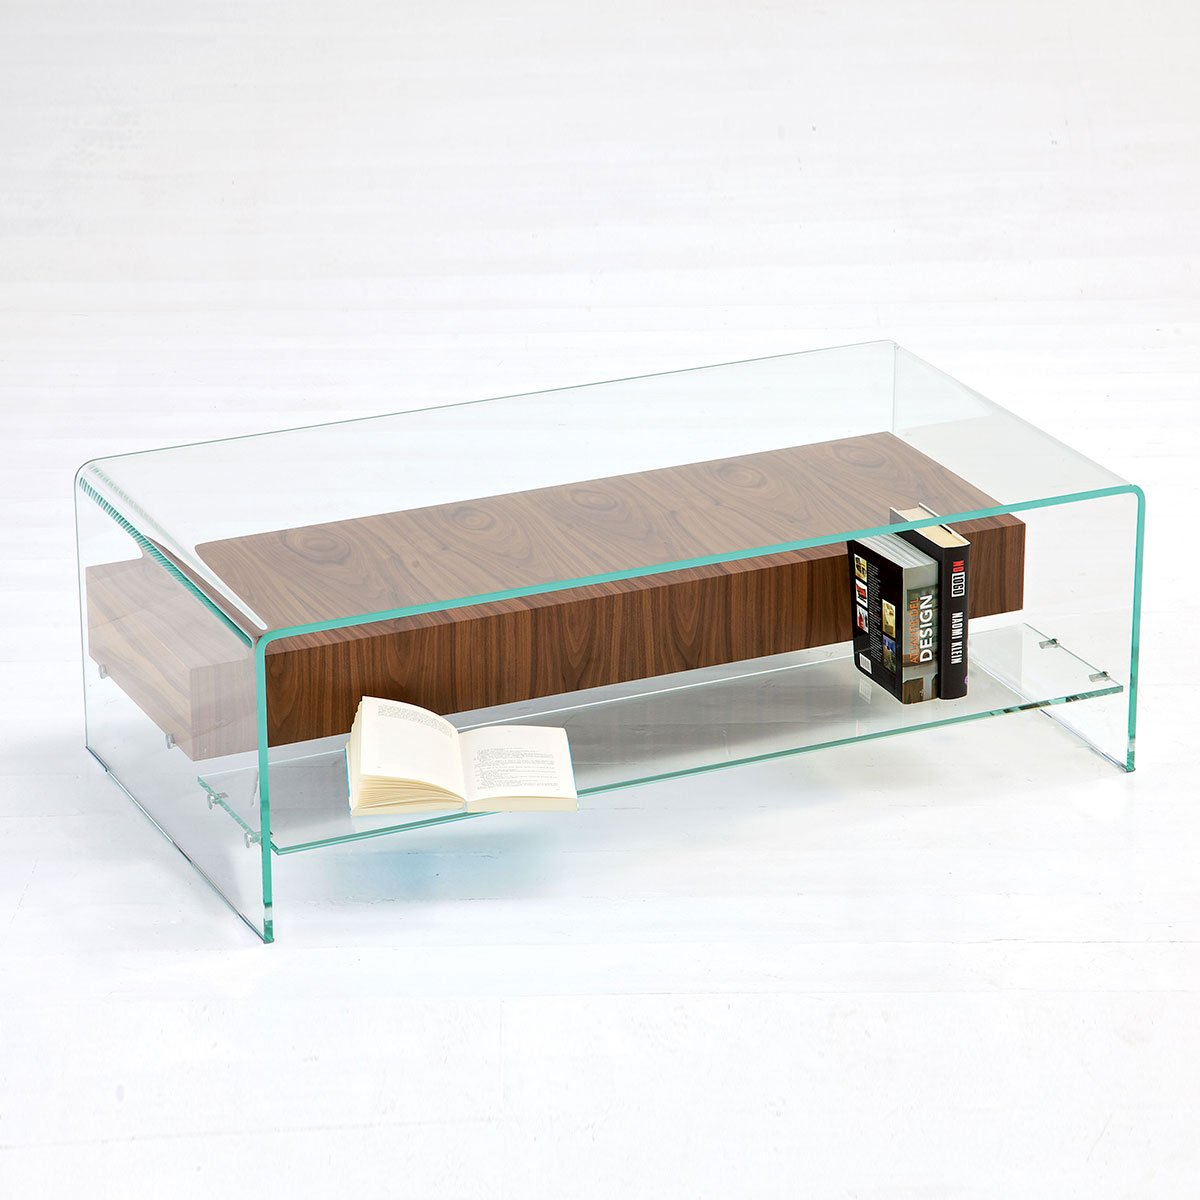 Couchtisch Glas Ablage Glass Coffee Table – Glass Furniture Blog